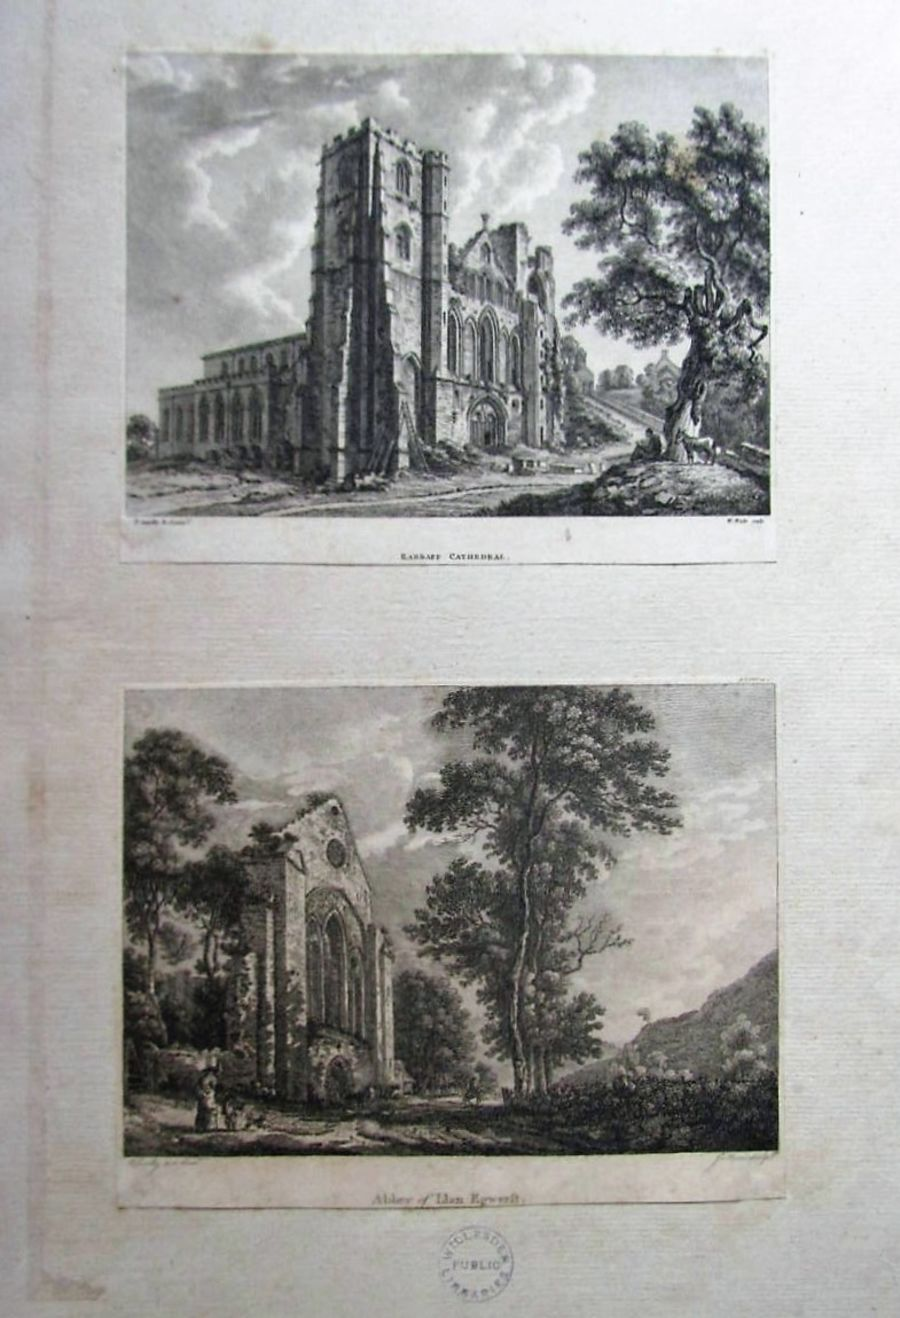 Two prints after Paul Sandby c1780 Llandaff Cathedral and Abbey of Llan Egwerst